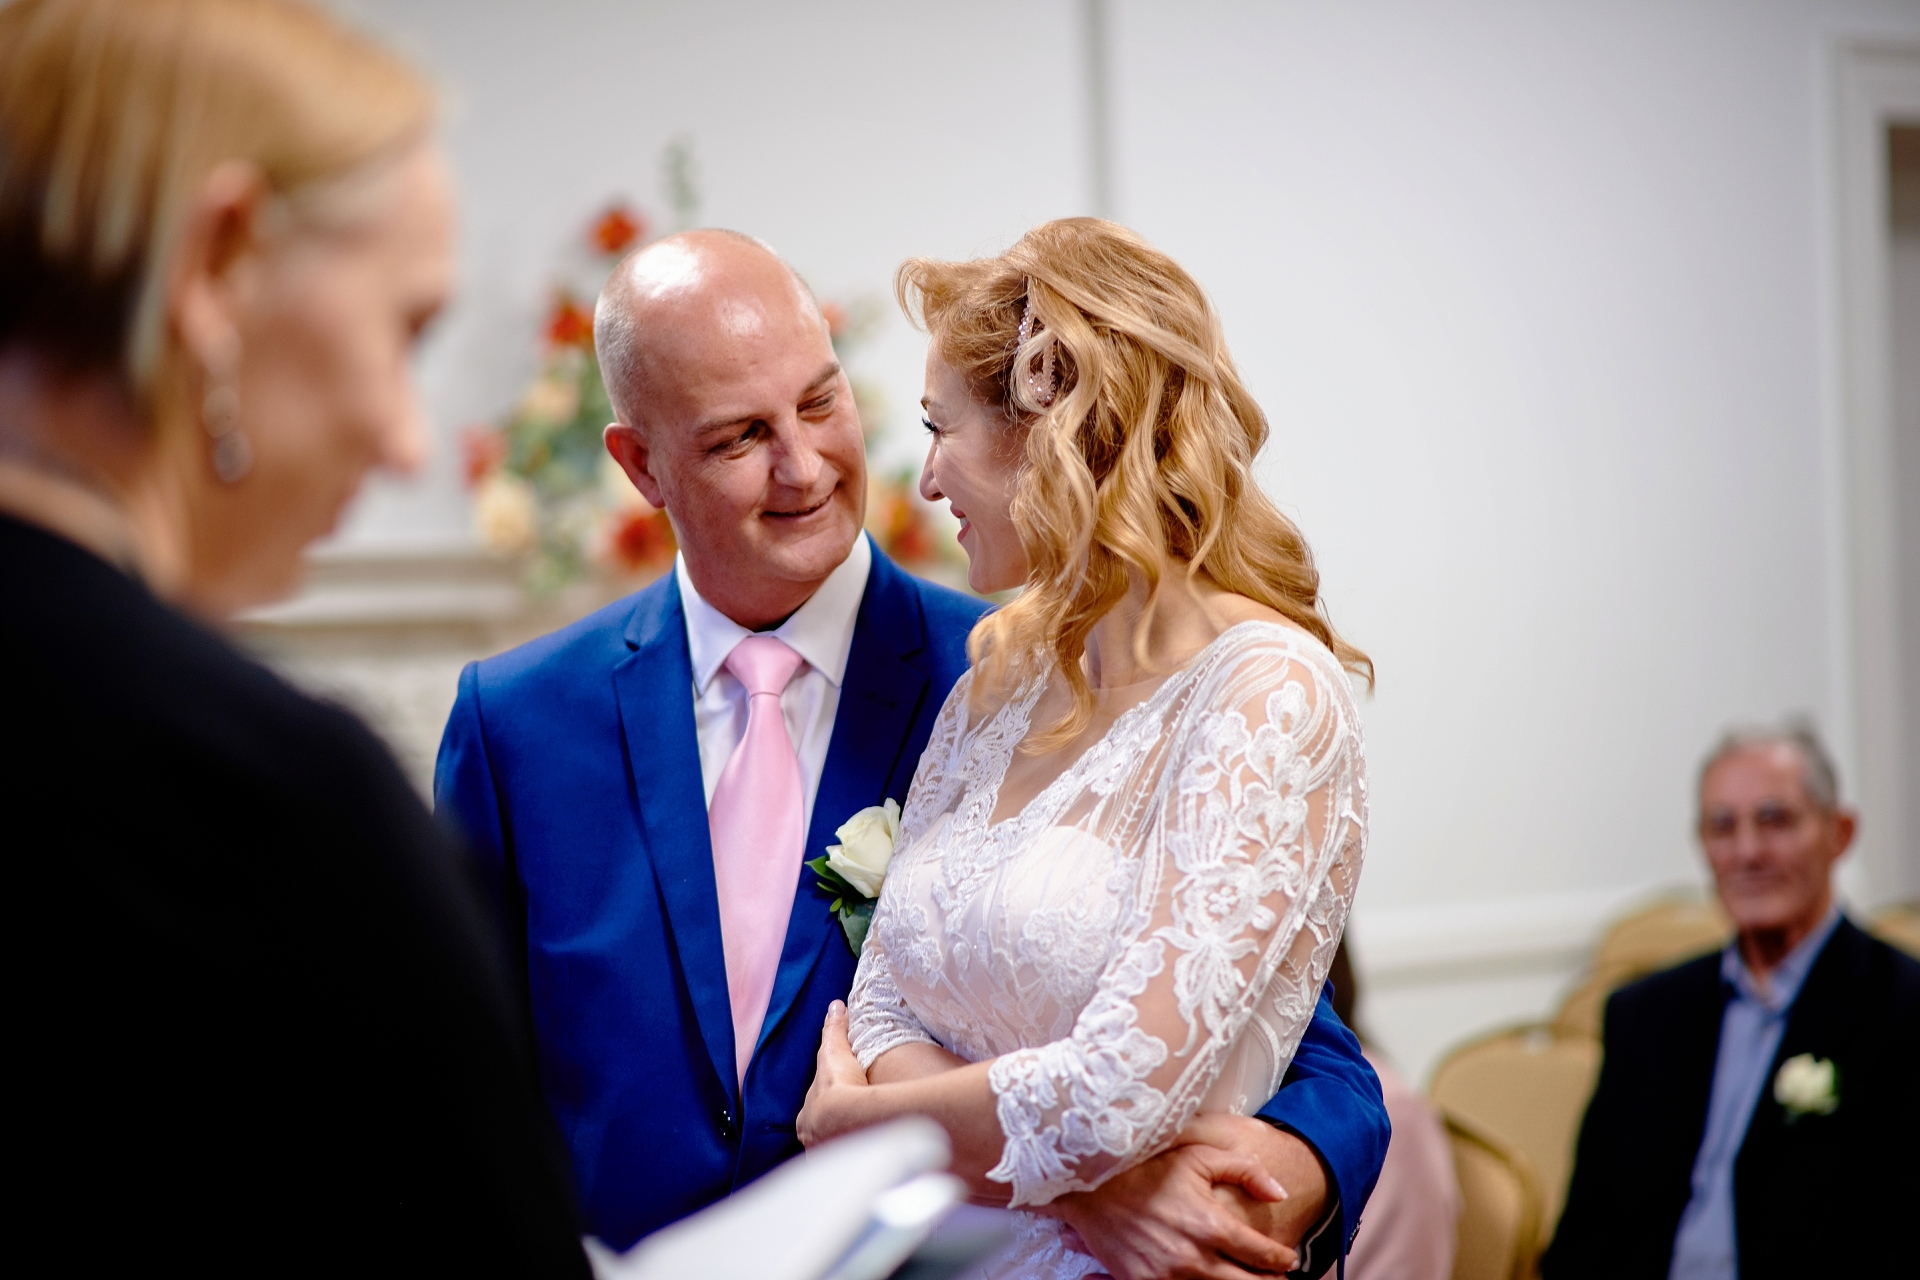 UK Civil Ceremony Elopement Photos | The way the groom is looking at his bride is priceless